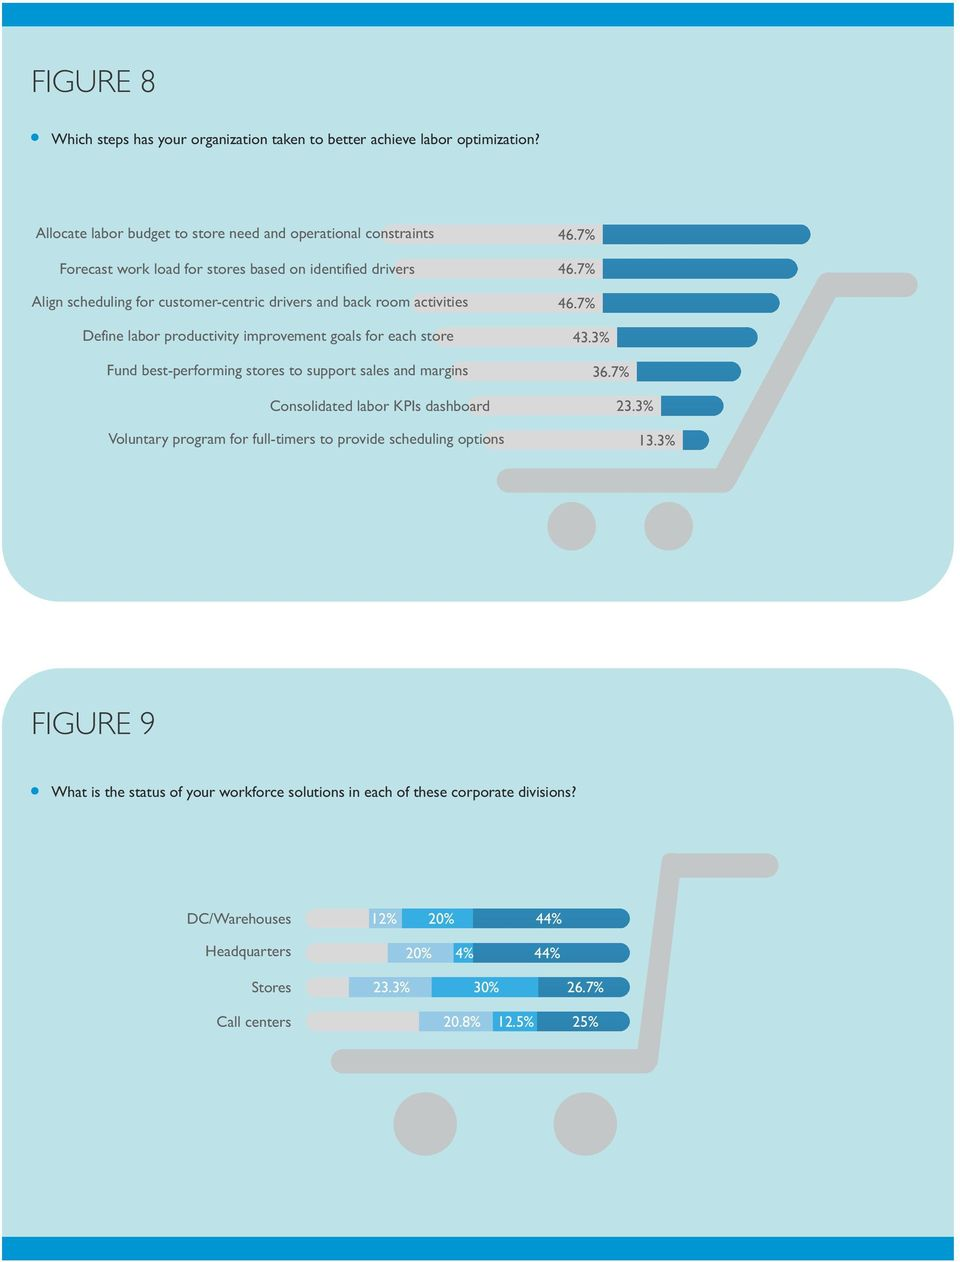 activities Define labor productivity improvement goals for each store Fund best-performing stores to support sales and margins Consolidated labor KPIs dashboard Voluntary program for